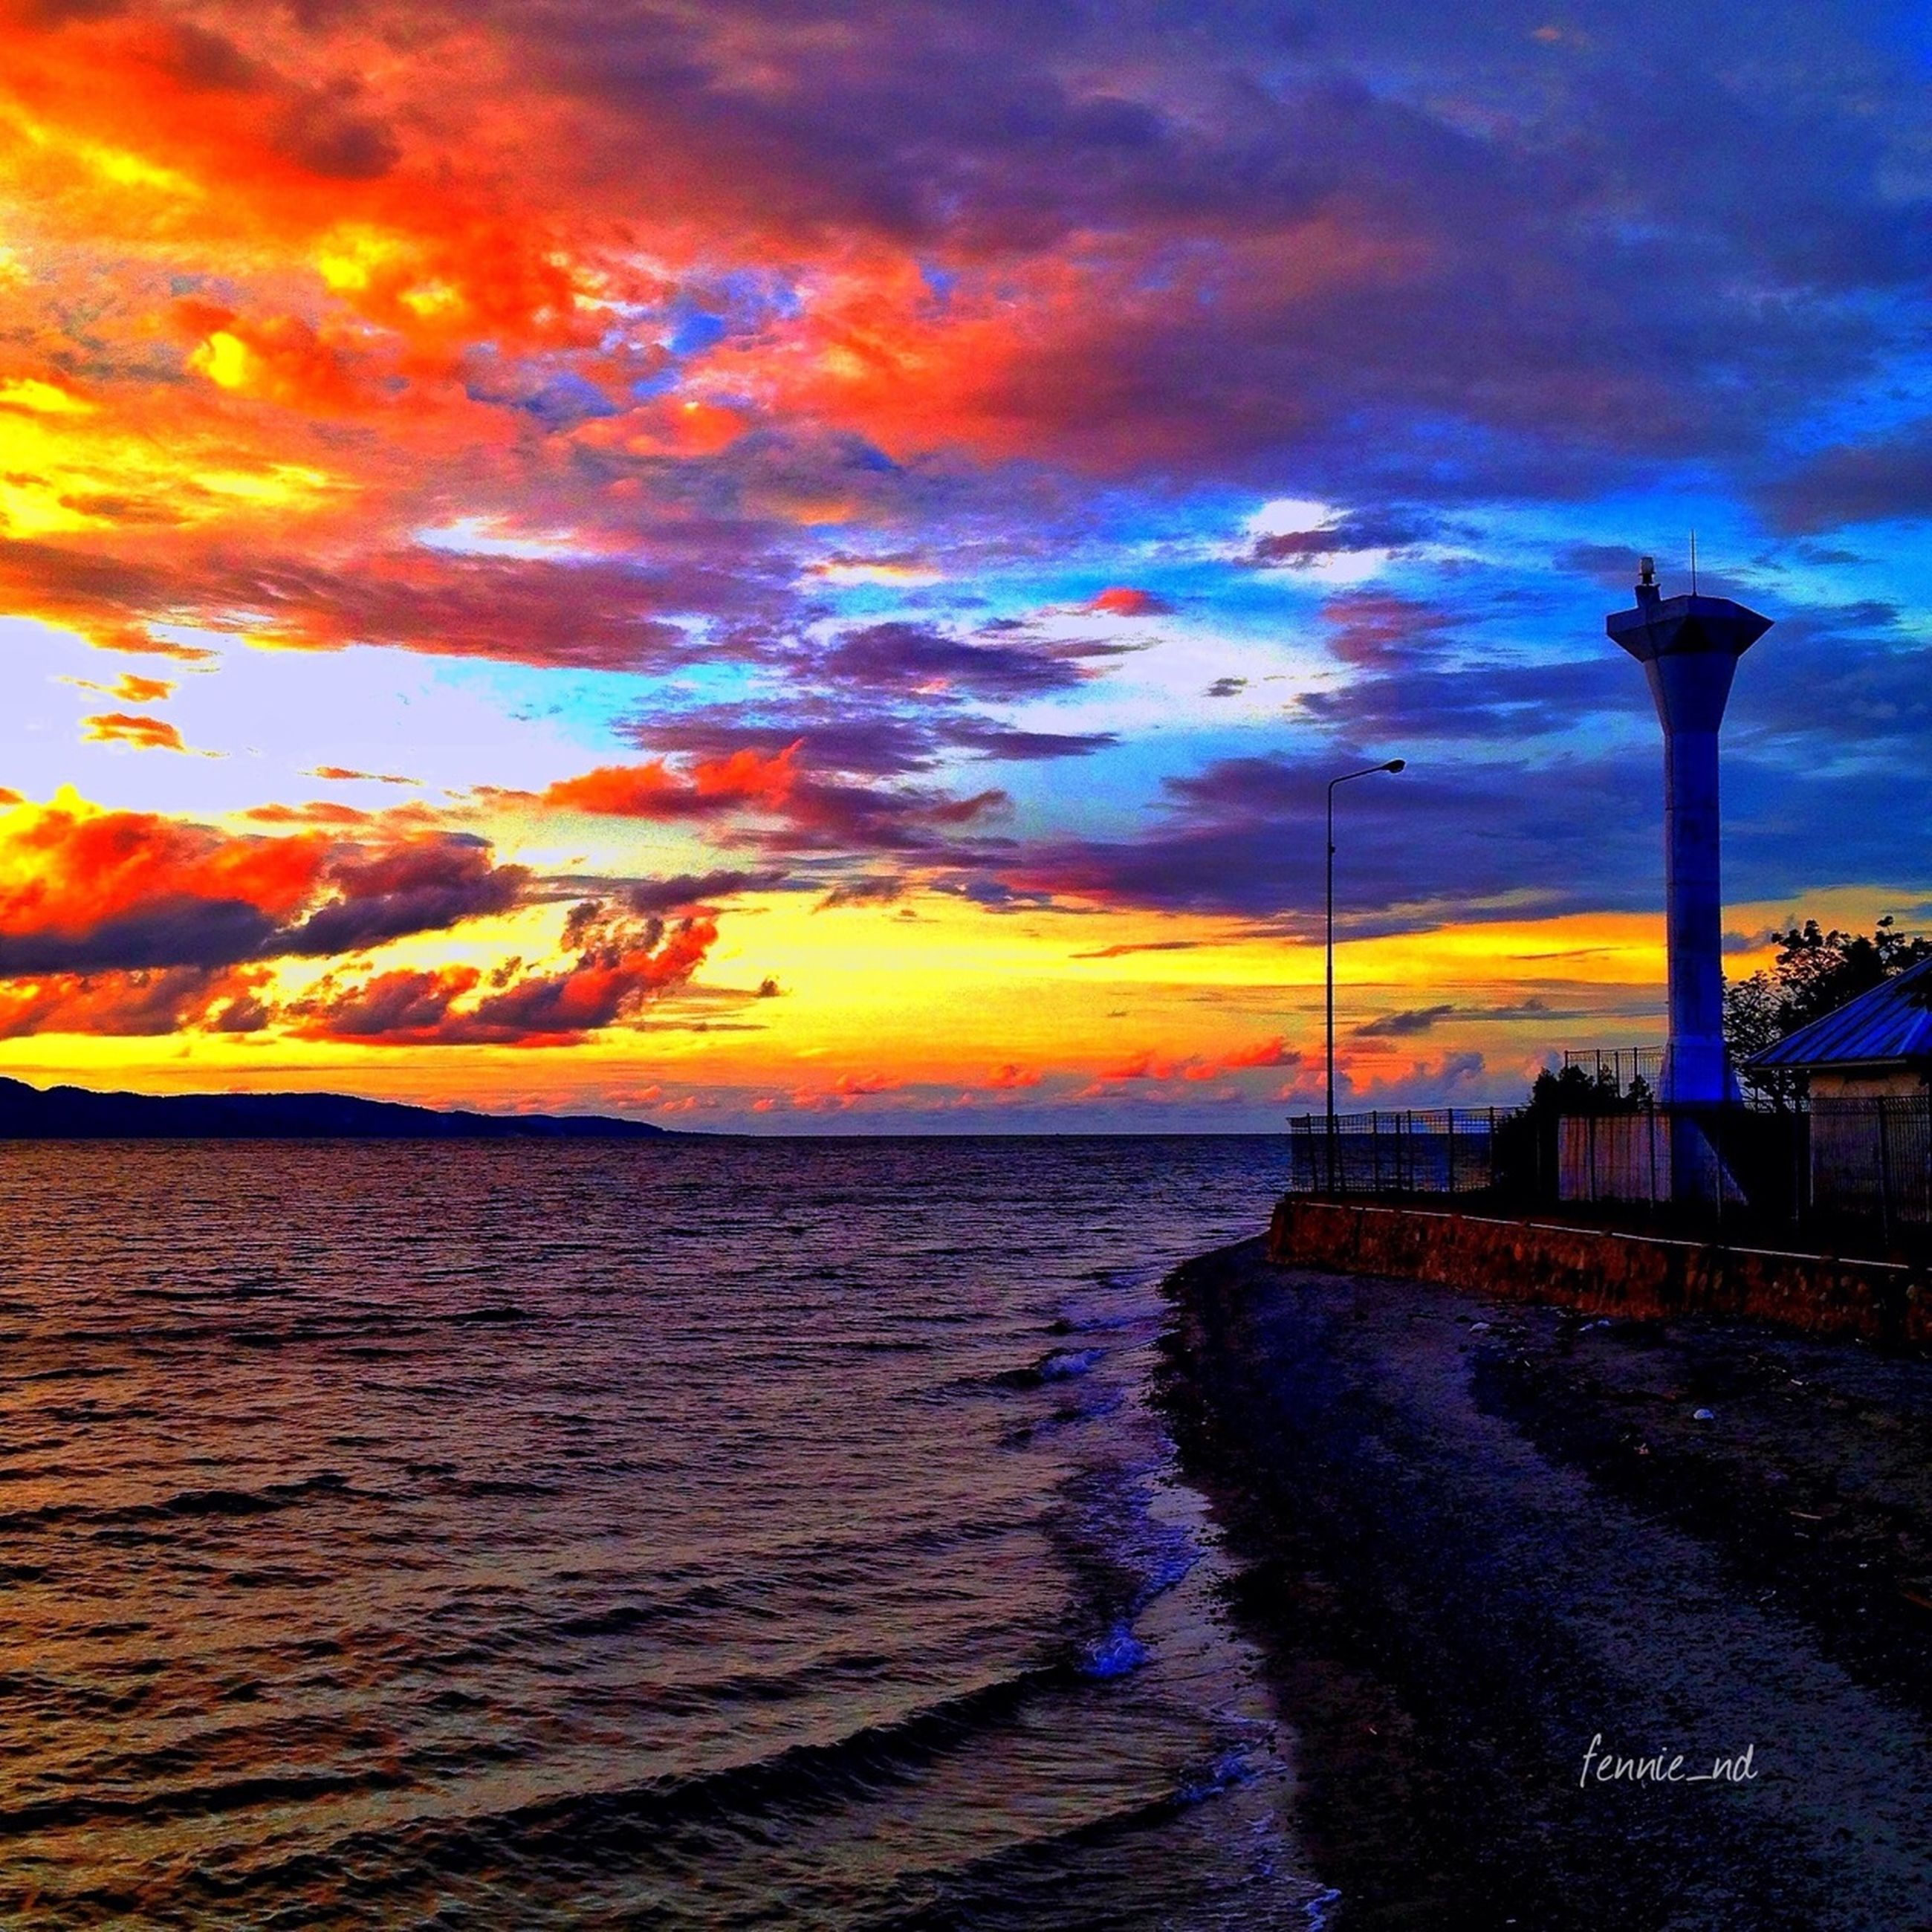 sunset, water, sky, sea, scenics, cloud - sky, tranquil scene, beauty in nature, tranquility, horizon over water, idyllic, nature, beach, cloud, cloudy, orange color, dramatic sky, pier, shore, rippled